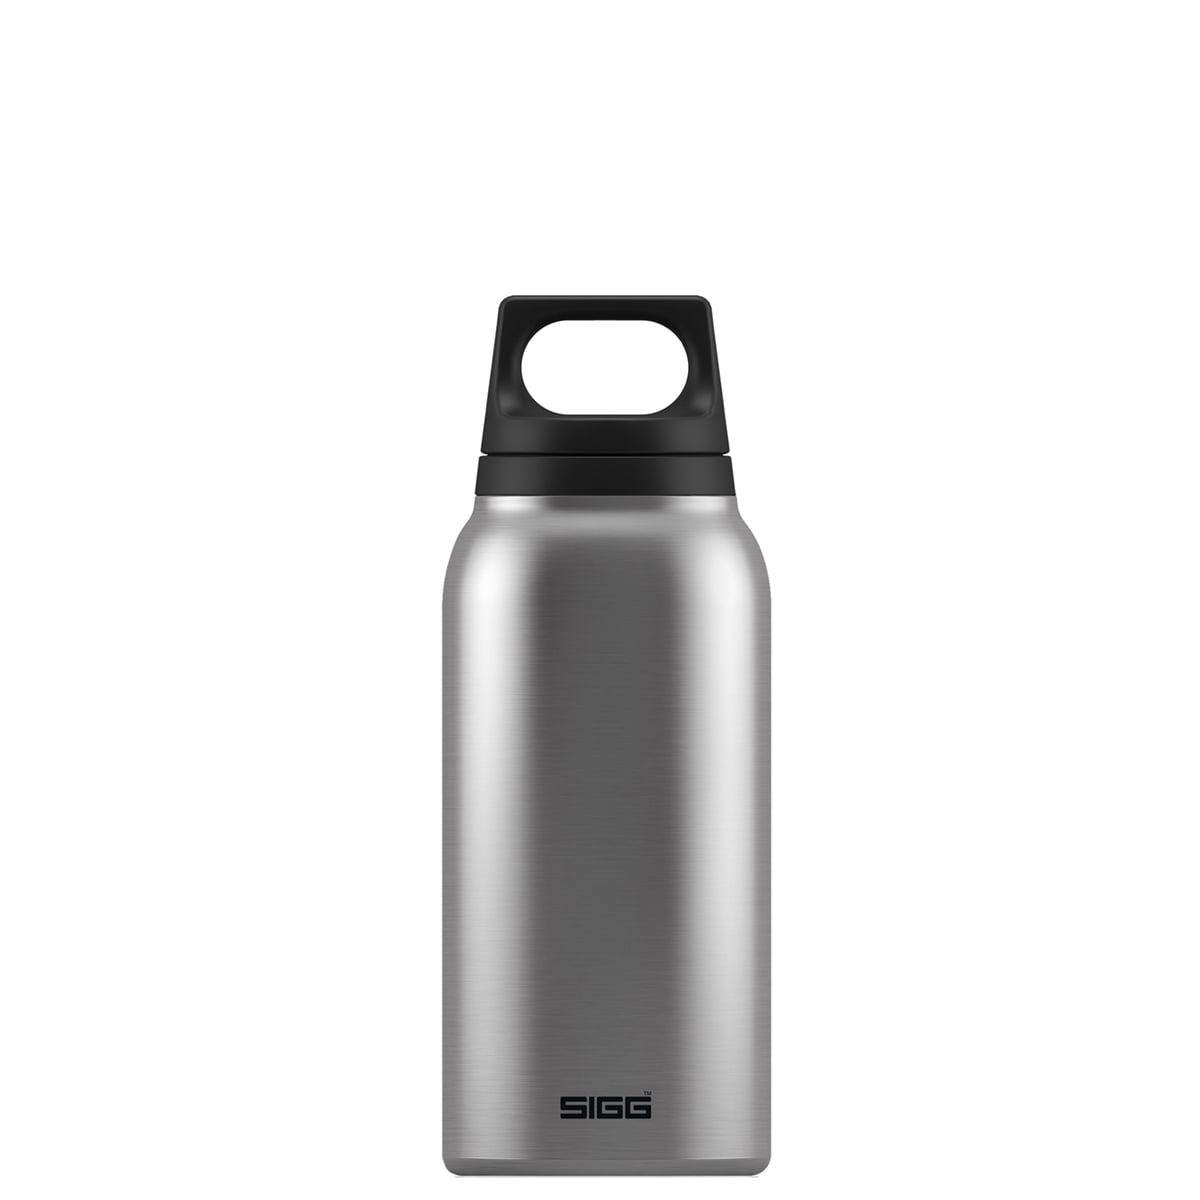 Sigg - Hot & cold thermos flask 0,3 l, brushed